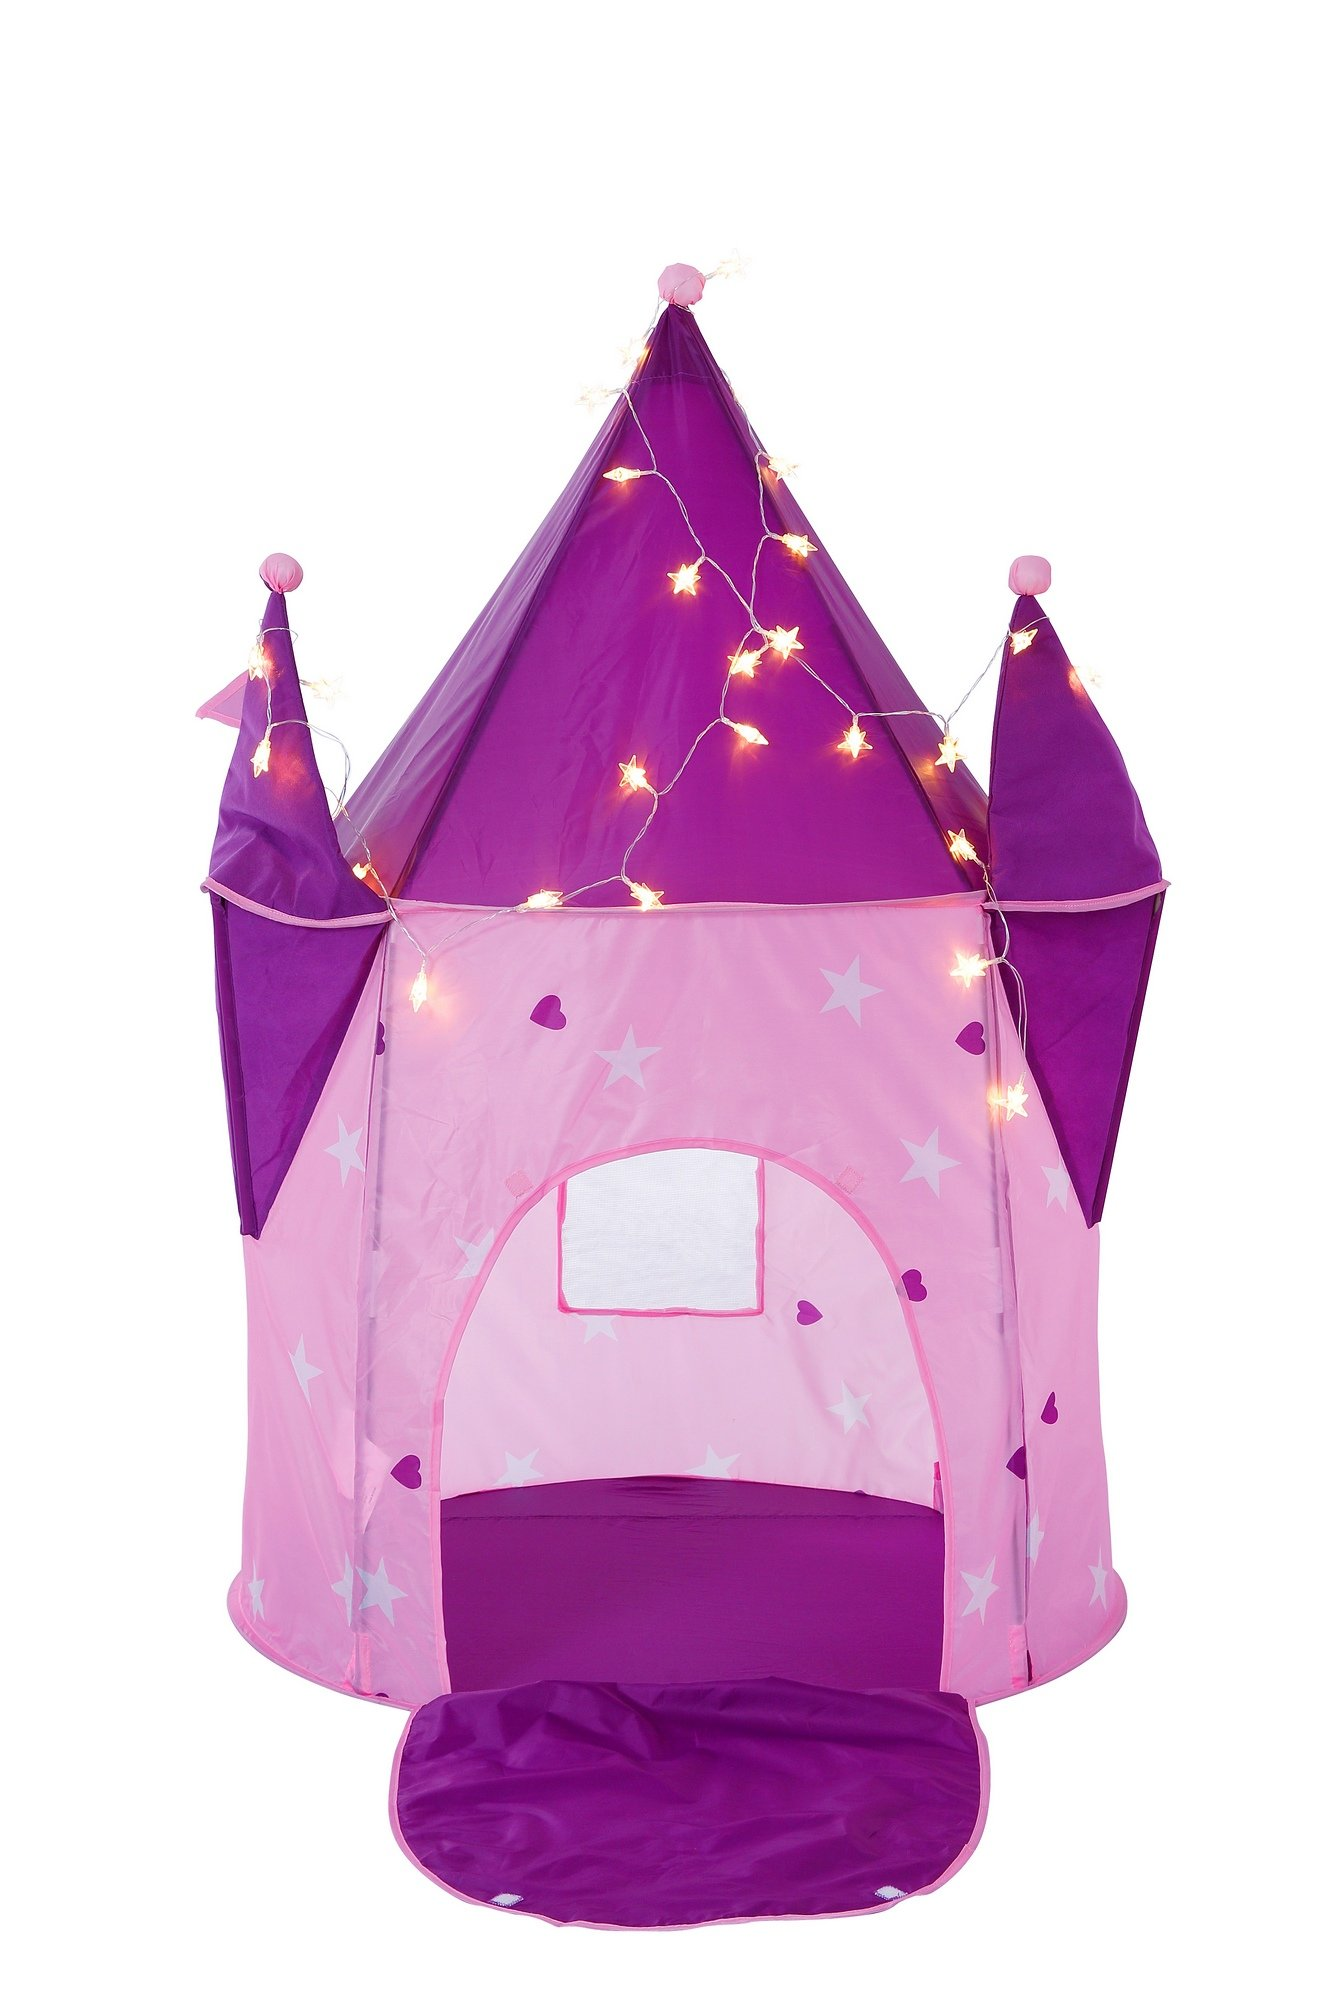 Girls Princess Castle Playouse Portable Folding Kids LED play Tent Toy Outdoor  sc 1 st  eBay & Girls Princess Castle Playouse Portable Folding Kids LED Pop Up ...